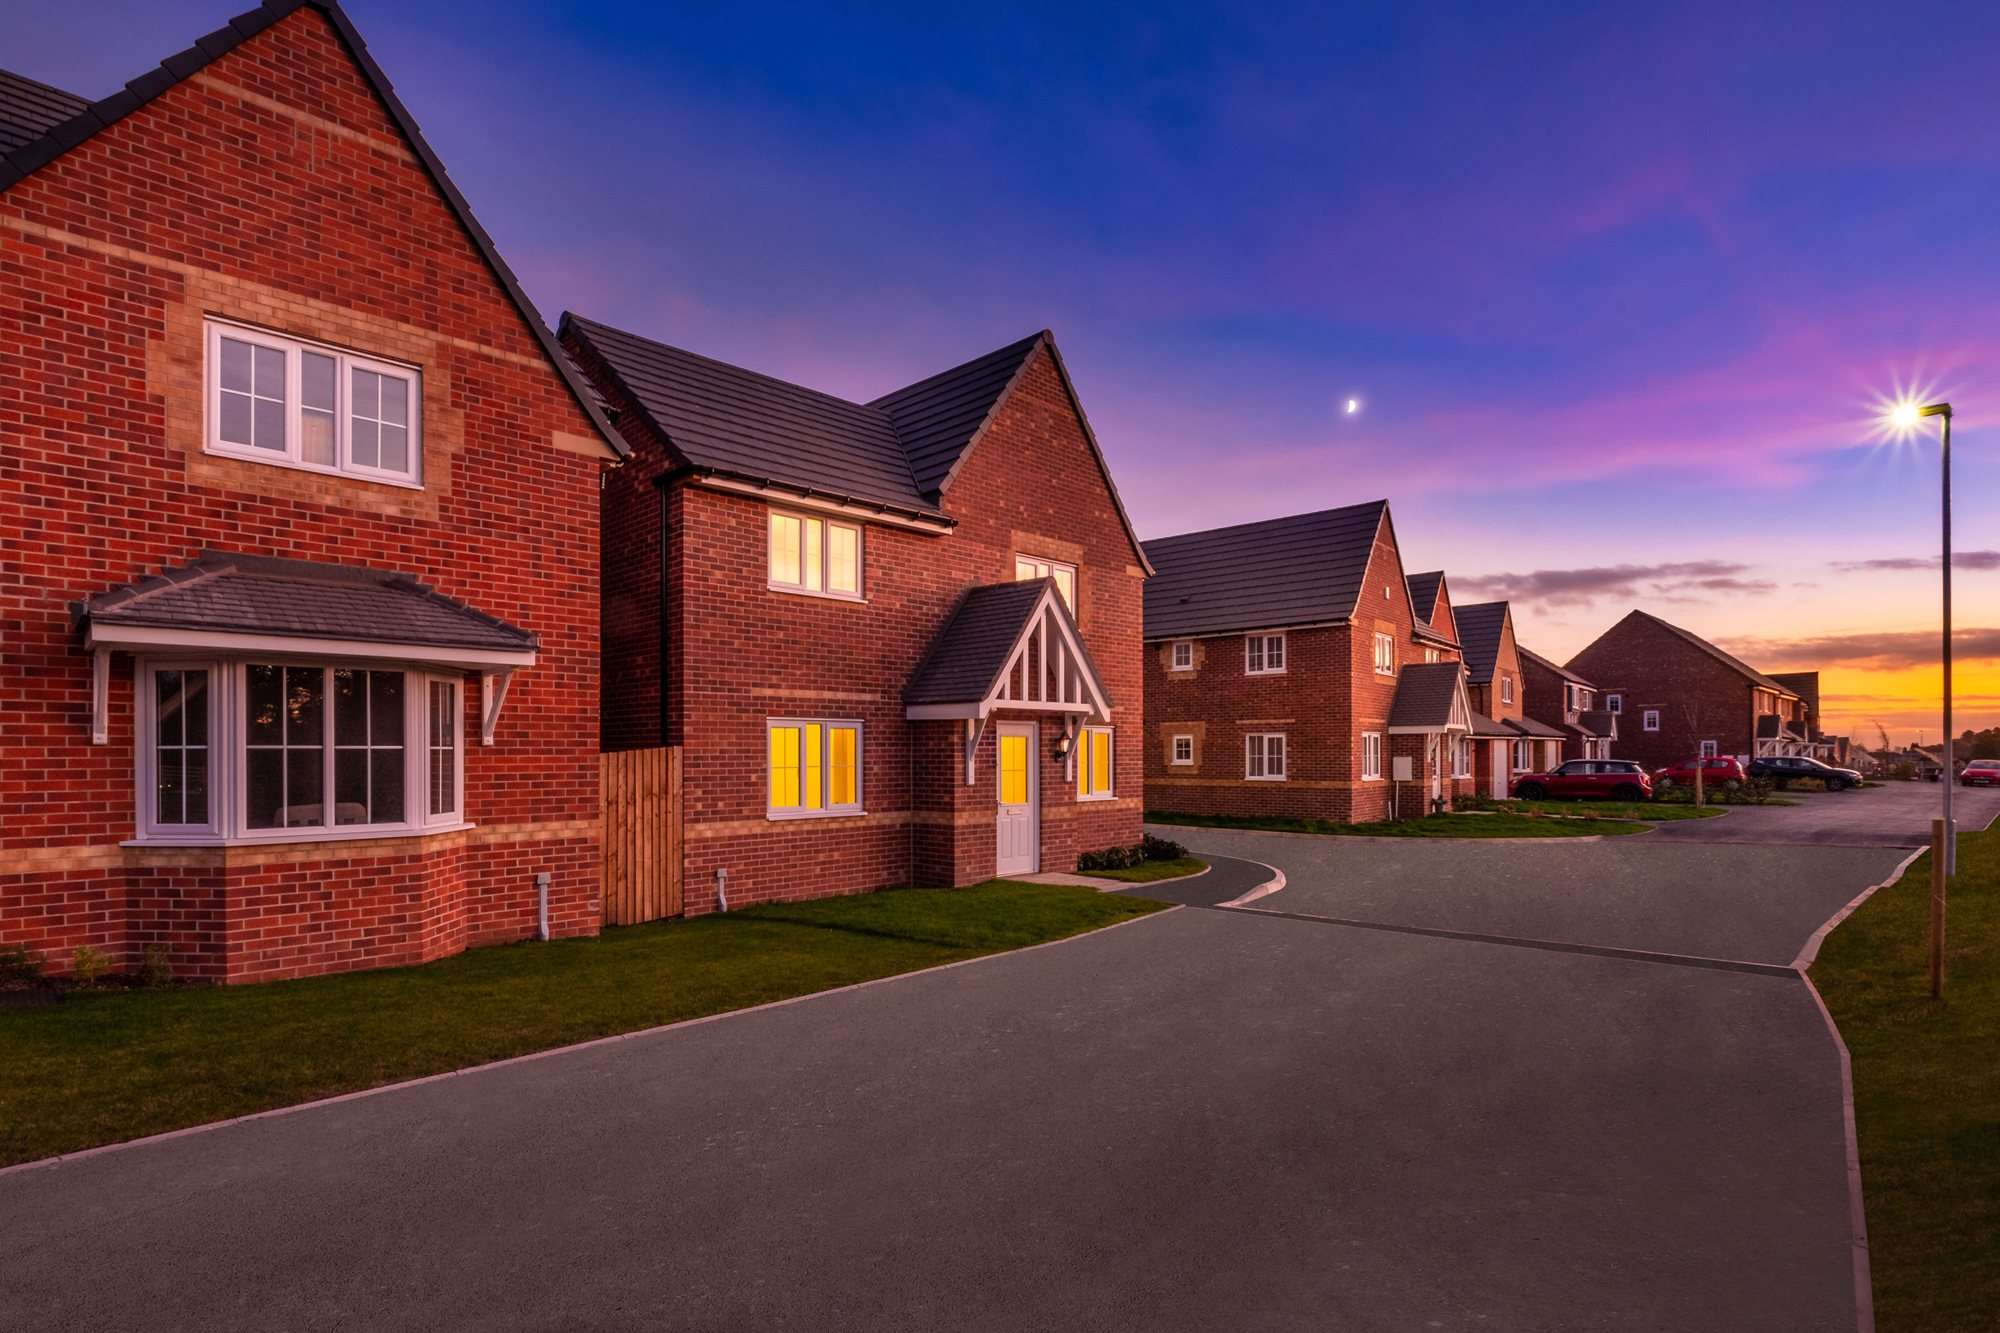 New Build Homes in Cannock